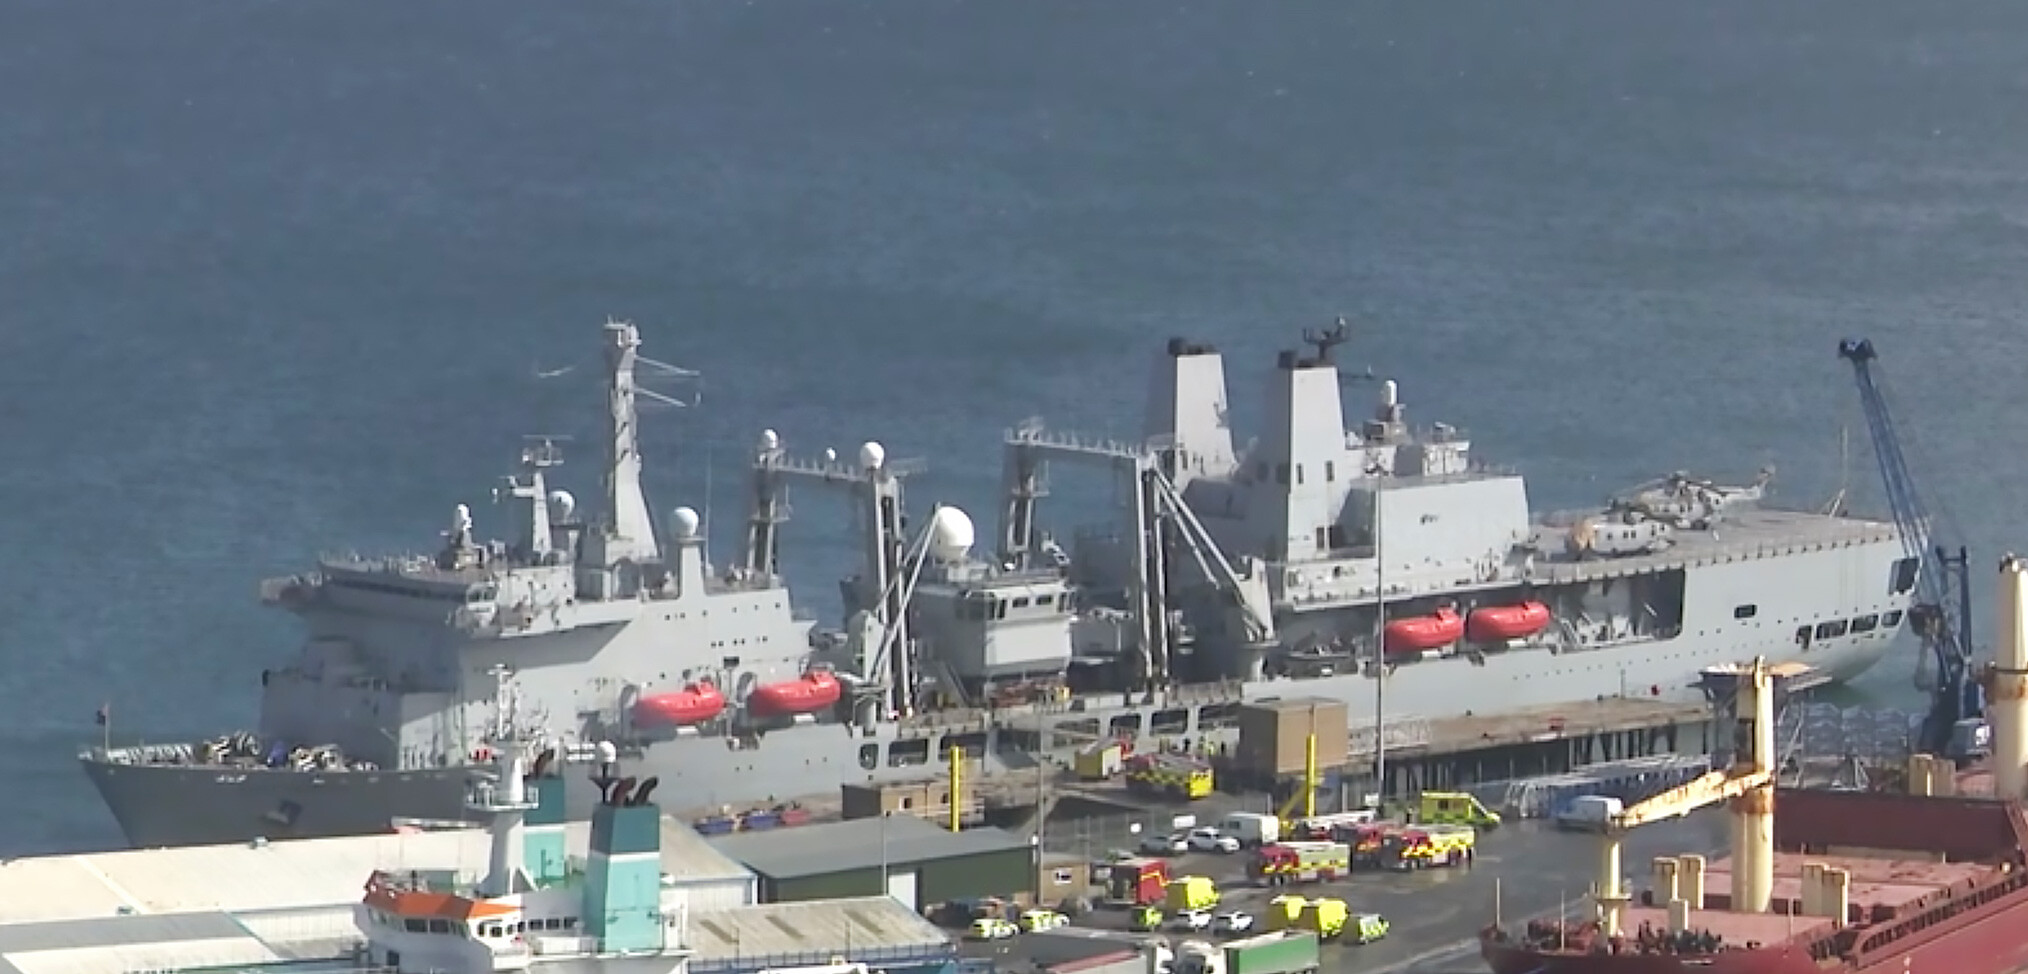 Minor fire onboard RFA Fort Victoria – highlights single point of failure for Carrier Strike Group